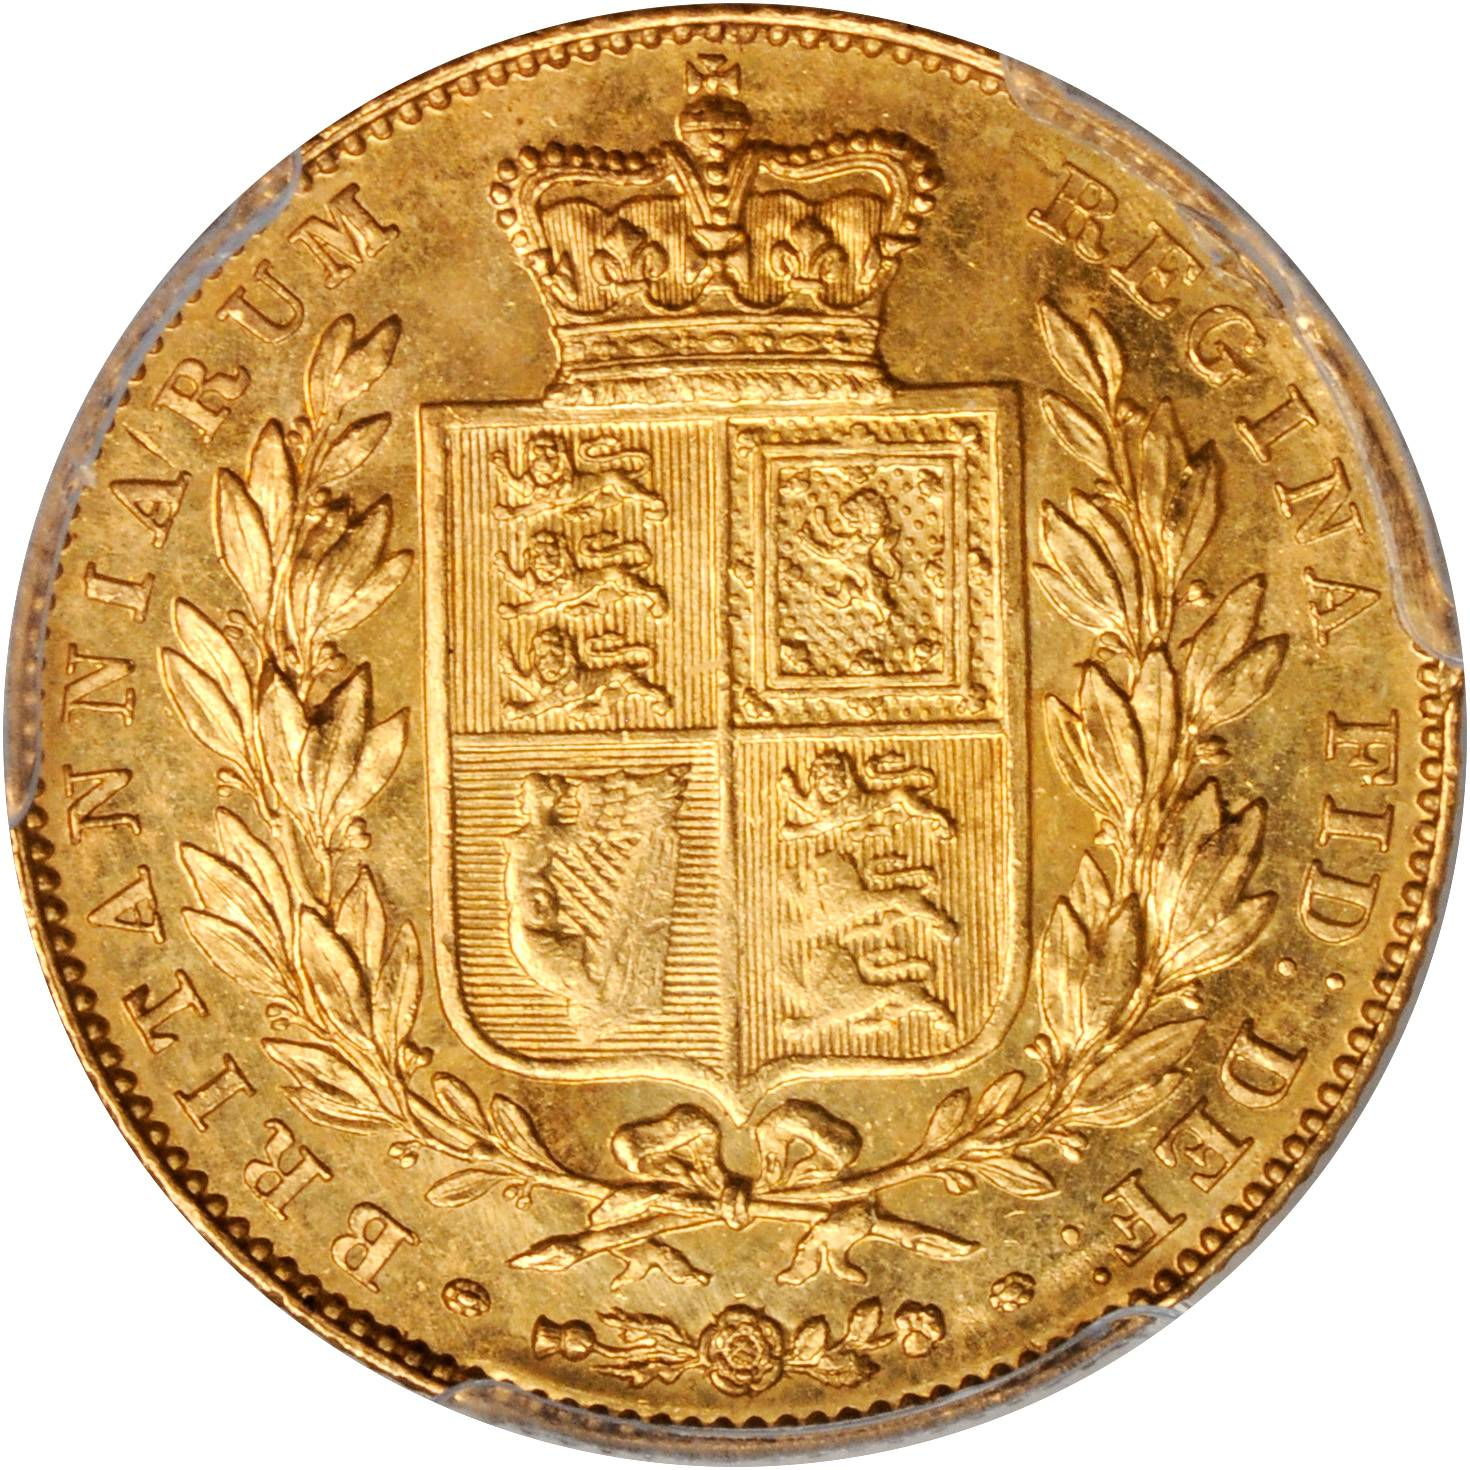 Sovereign 1843: Photo Great Britain 1843 sovereign